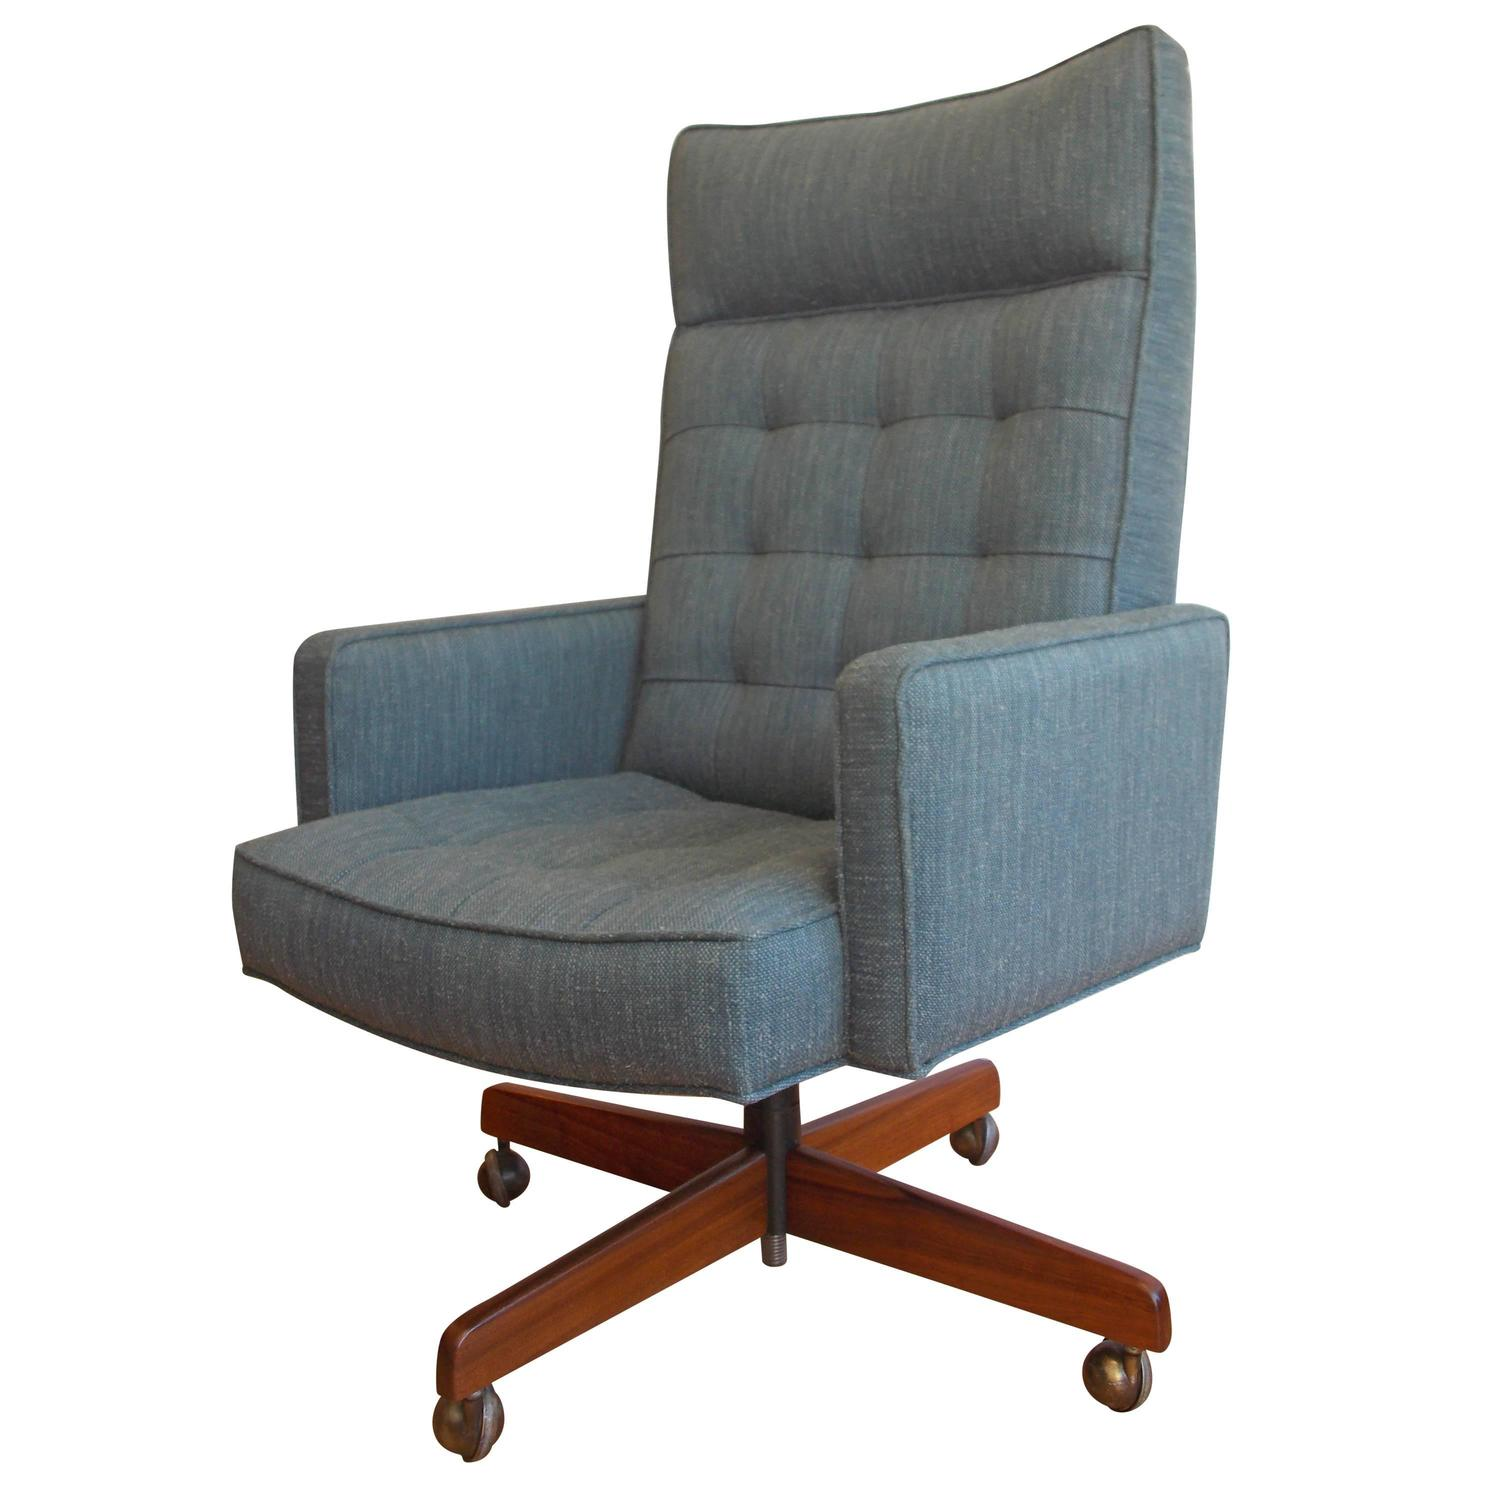 vincent cafiero executive office chair for knoll at 1stdibs